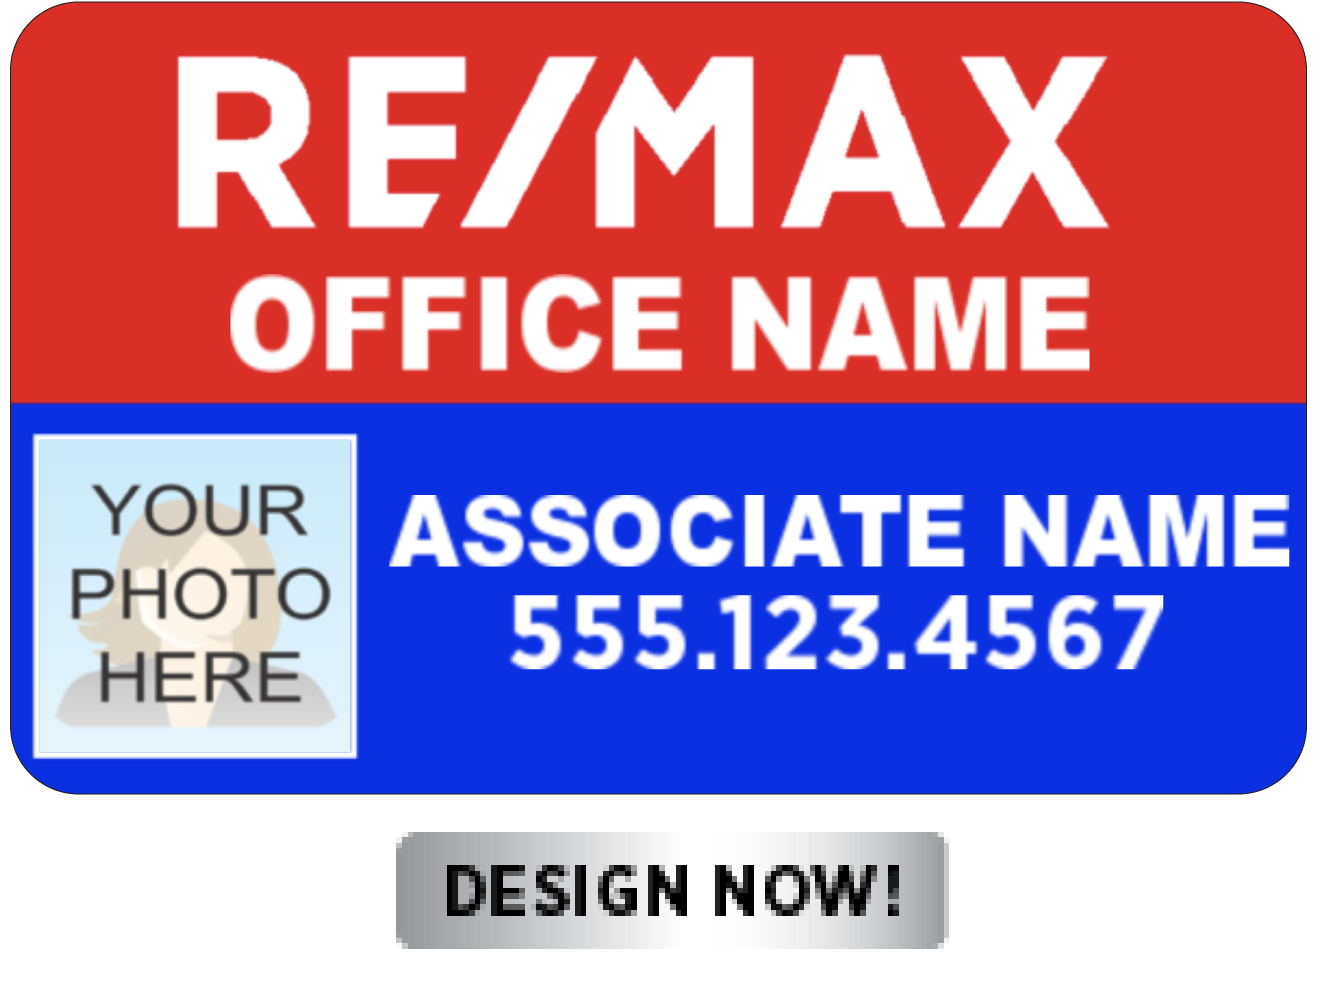 remax11x18magnetredbluewithpicrevised.png